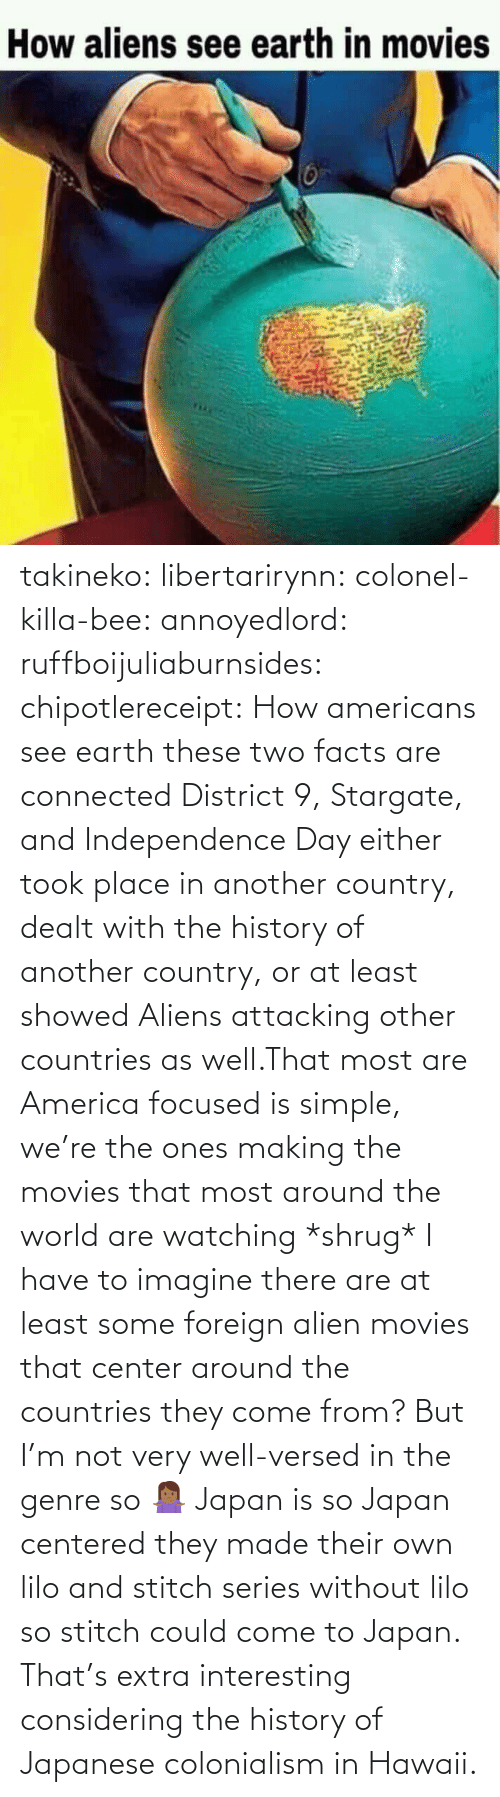 Aliens: takineko:  libertarirynn:  colonel-killa-bee:  annoyedlord: ruffboijuliaburnsides:  chipotlereceipt: How americans see earth these two facts are connected     District 9, Stargate, and Independence Day either took place in another country, dealt with the history of another country, or at least showed Aliens attacking other countries as well.That most are America focused is simple, we're the ones making the movies that most around the world are watching *shrug*   I have to imagine there are at least some foreign alien movies that center around the countries they come from? But I'm not very well-versed in the genre so 🤷🏾‍♀️   Japan is so Japan centered they made their own lilo and stitch series without lilo so stitch could come to Japan.    That's extra interesting considering the history of Japanese colonialism in Hawaii.